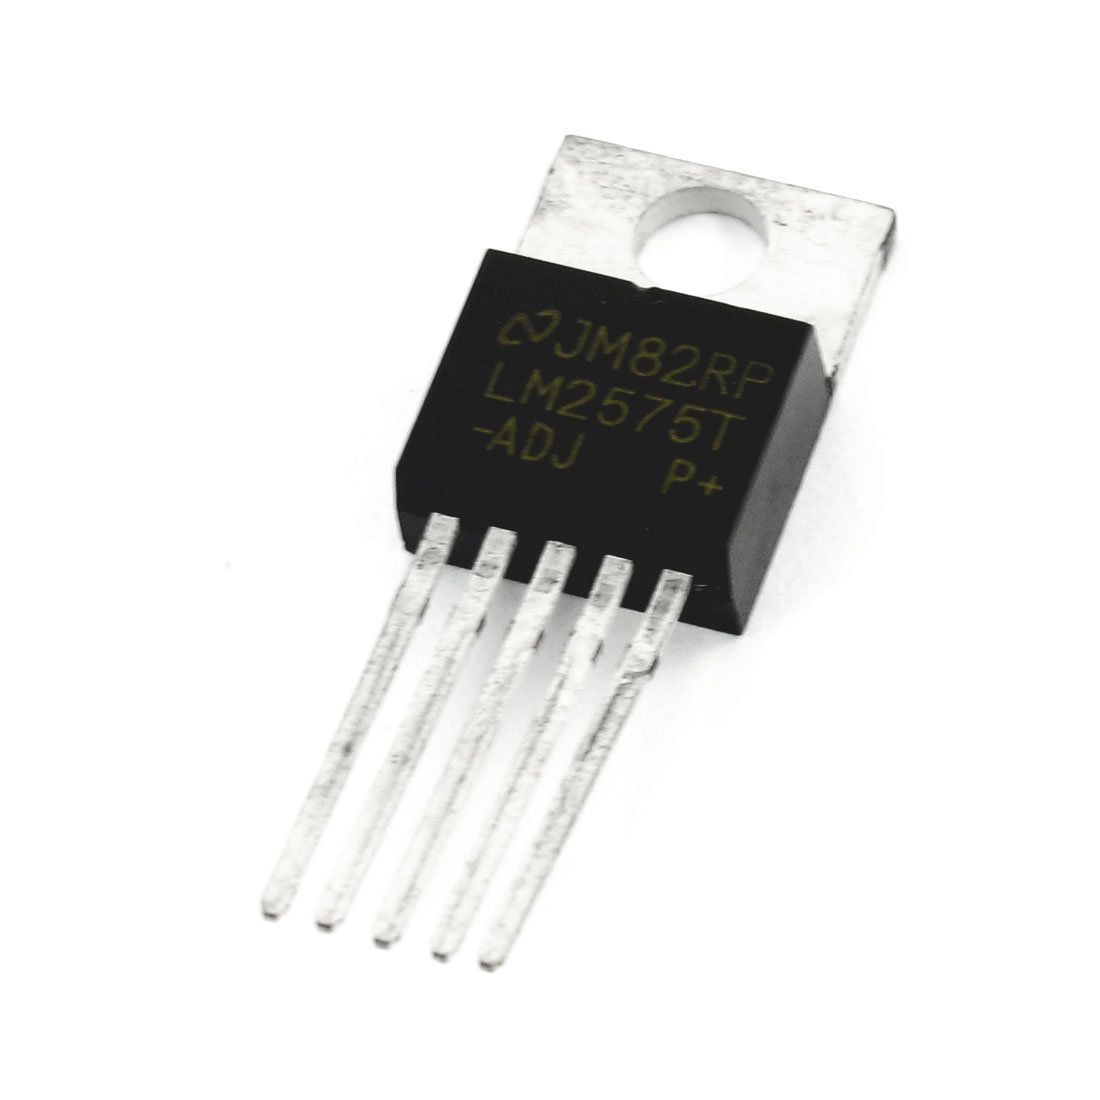 LM2575T-ADJ 1A Adjustable Output Voltage Step-Down Switching Regulator